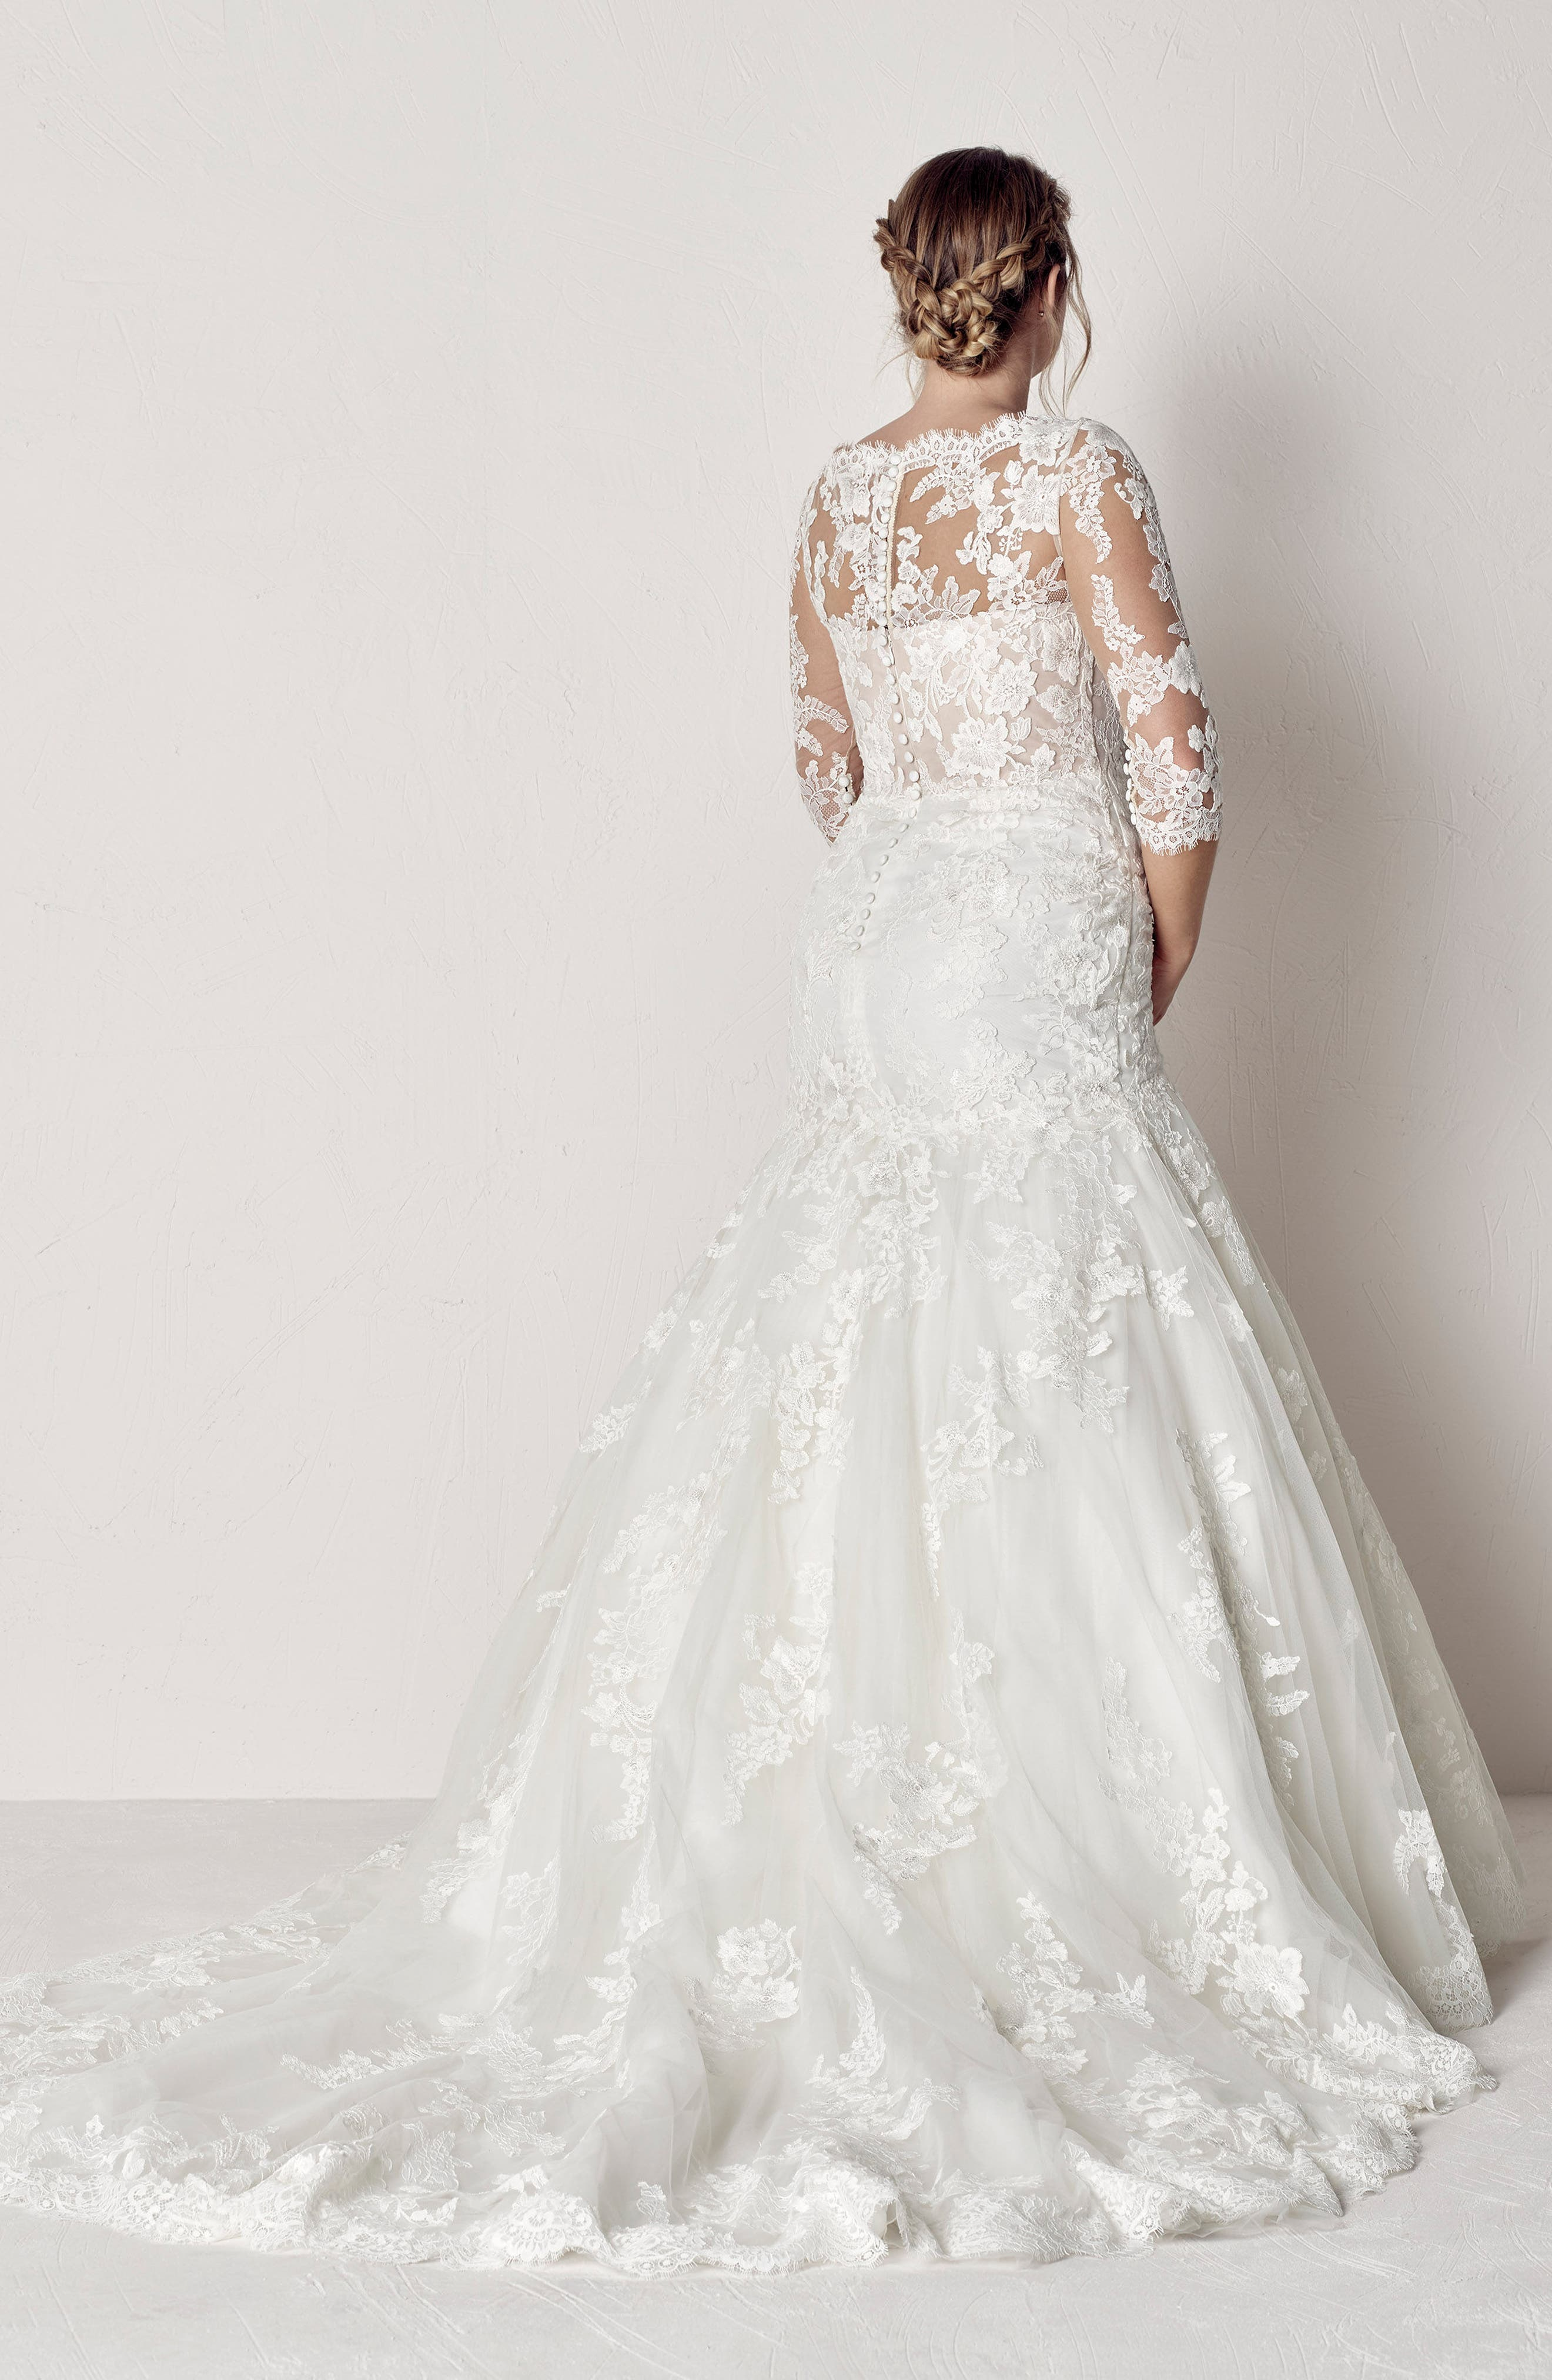 Evelyn Lace Mermaid Gown,                             Alternate thumbnail 2, color,                             OFF WHITE/ CRST/ ND